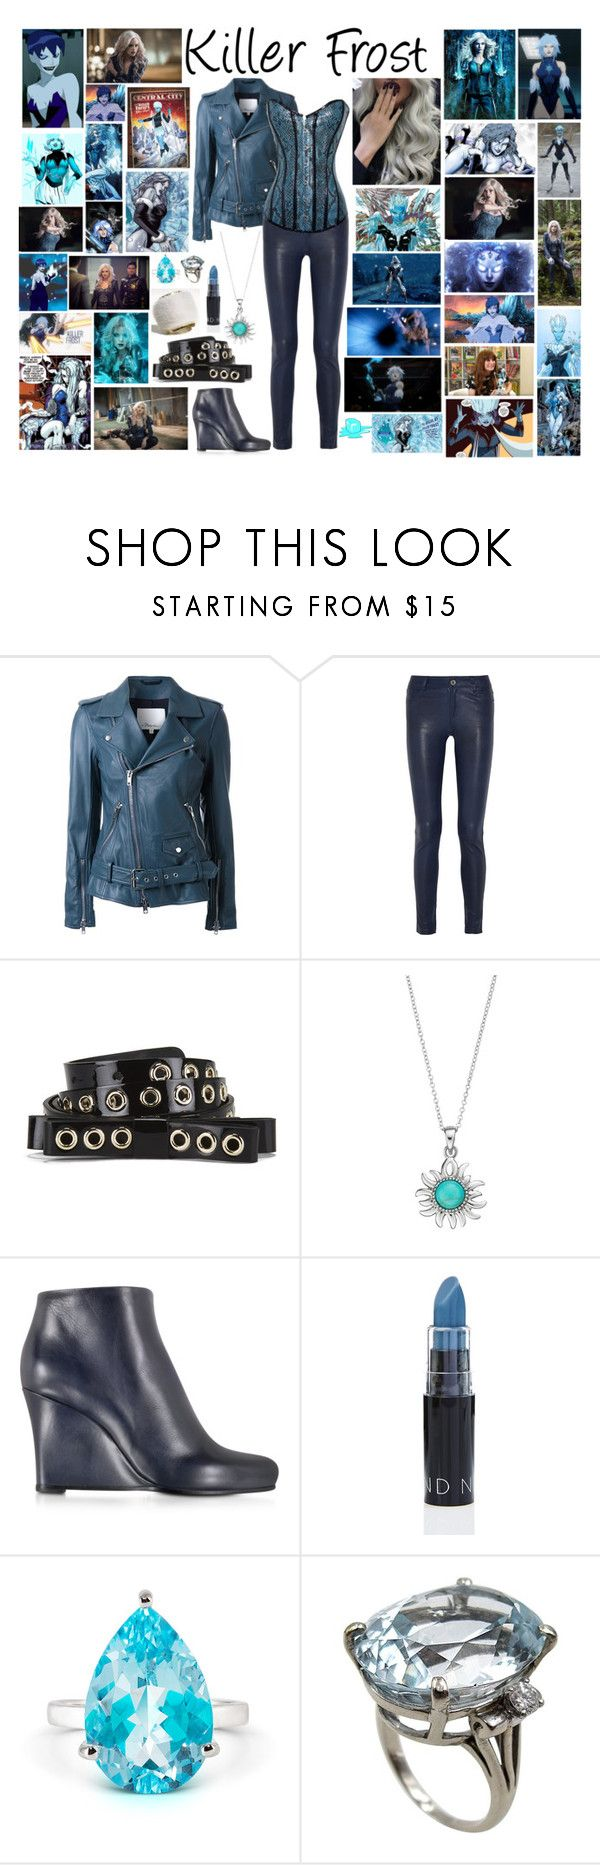 """""""Killer Frost"""" by pie-epic ❤ liked on Polyvore featuring Rogues Gallery, 3.1 Phillip Lim, Alice + Olivia, RED Valentino and Jil Sander"""